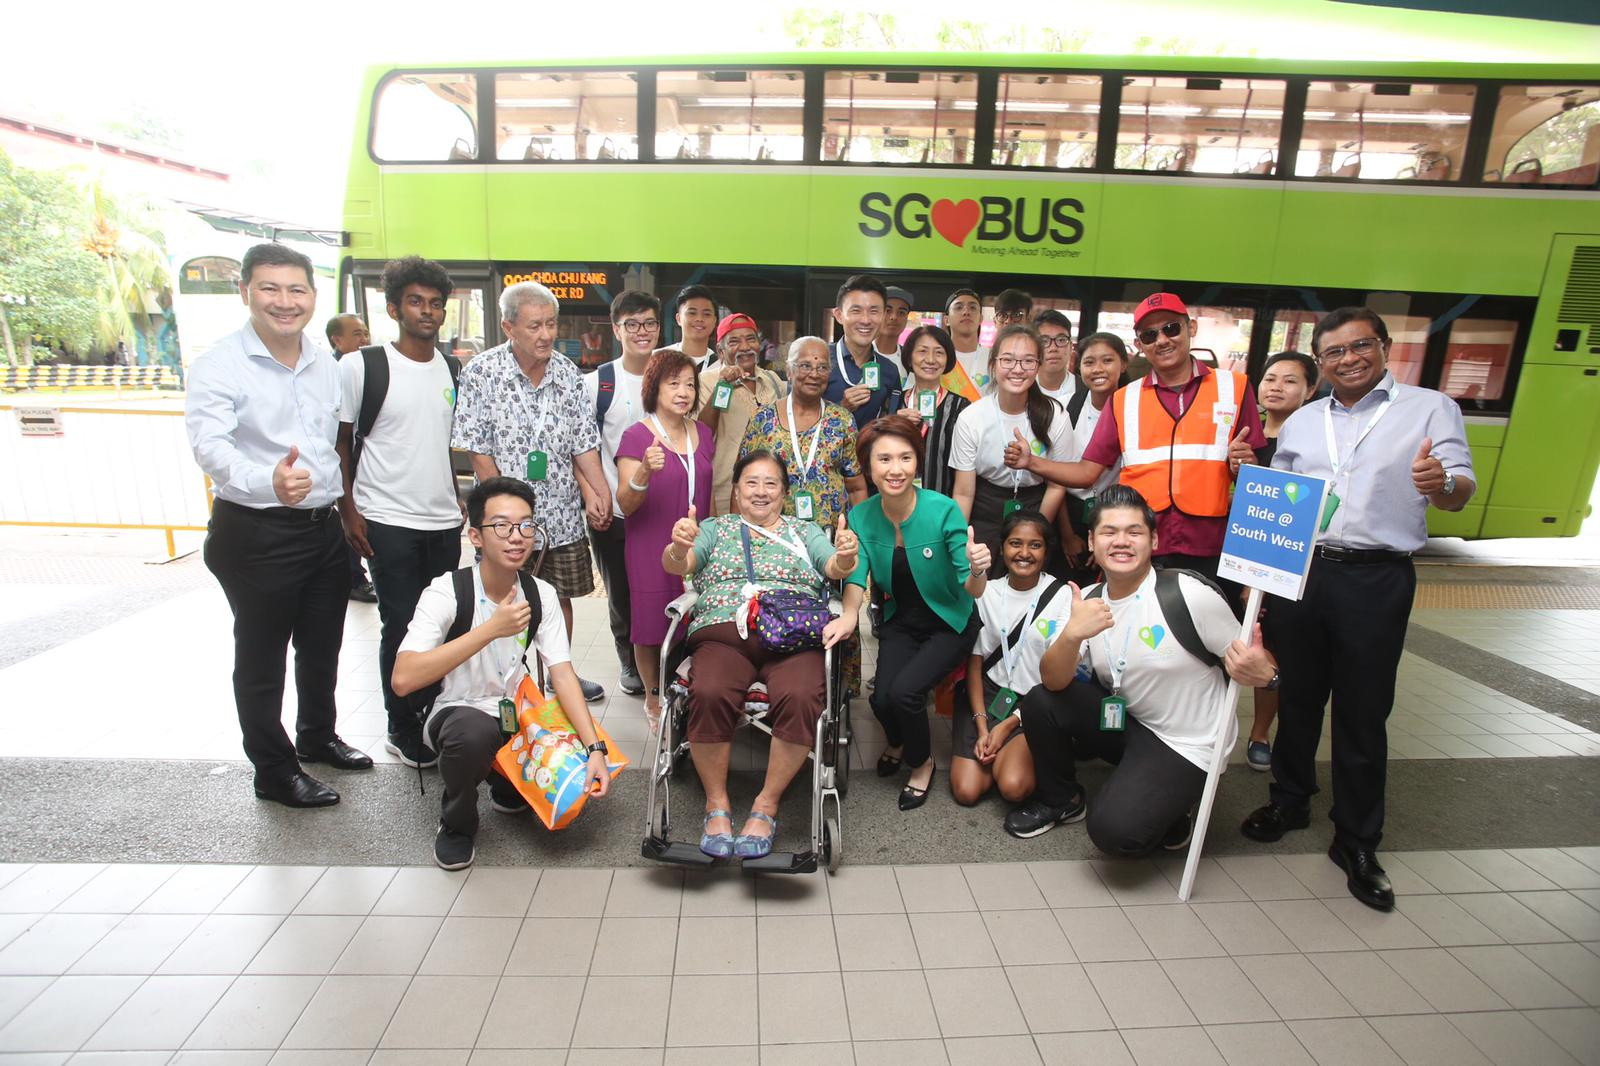 Care Ride @ South West Bus